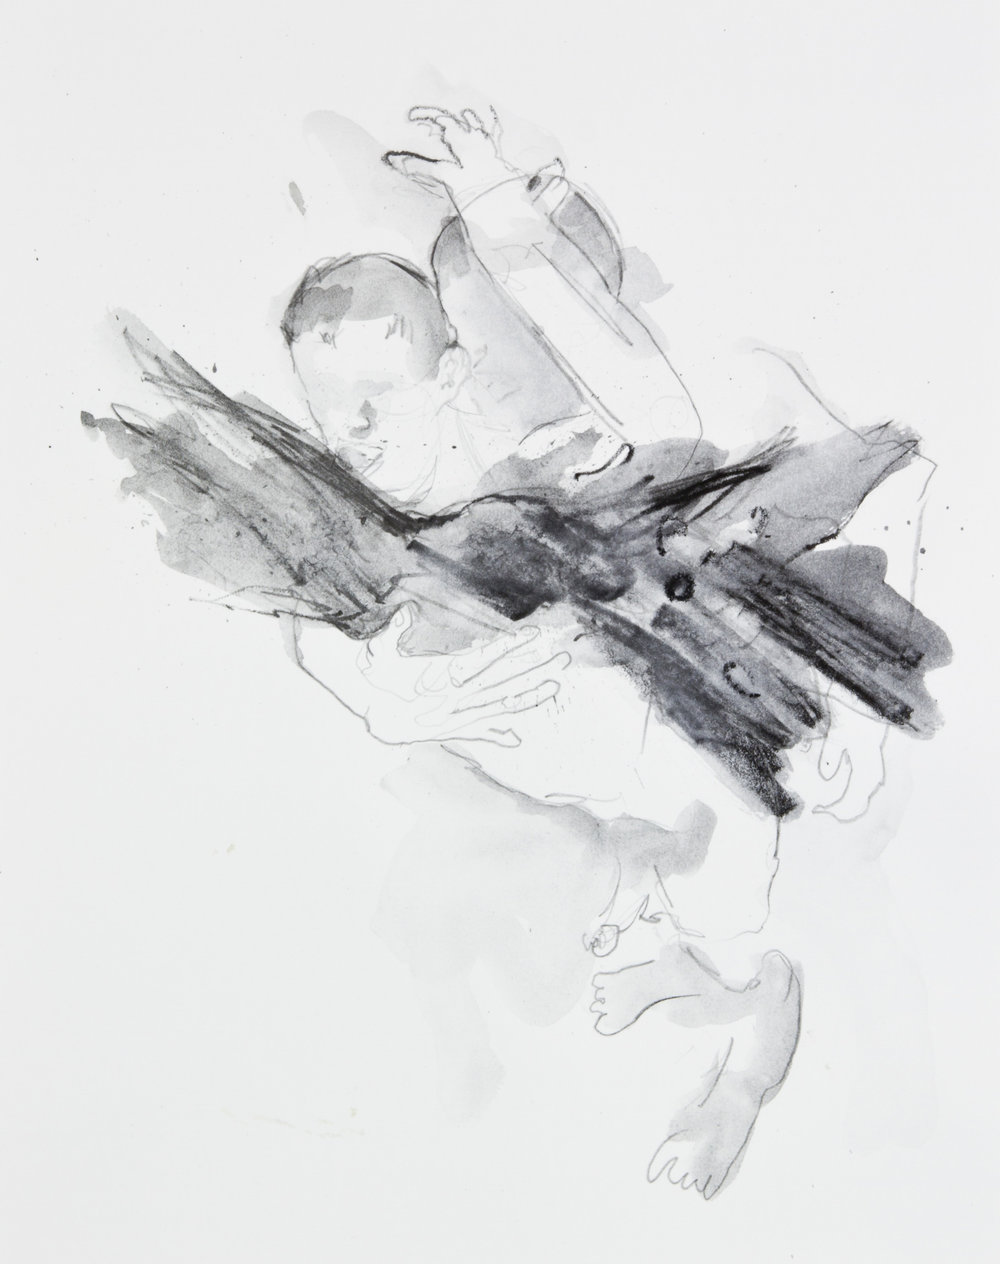 Forming Out Of Nothing, 2013, graphite on paper, 11x14 inches